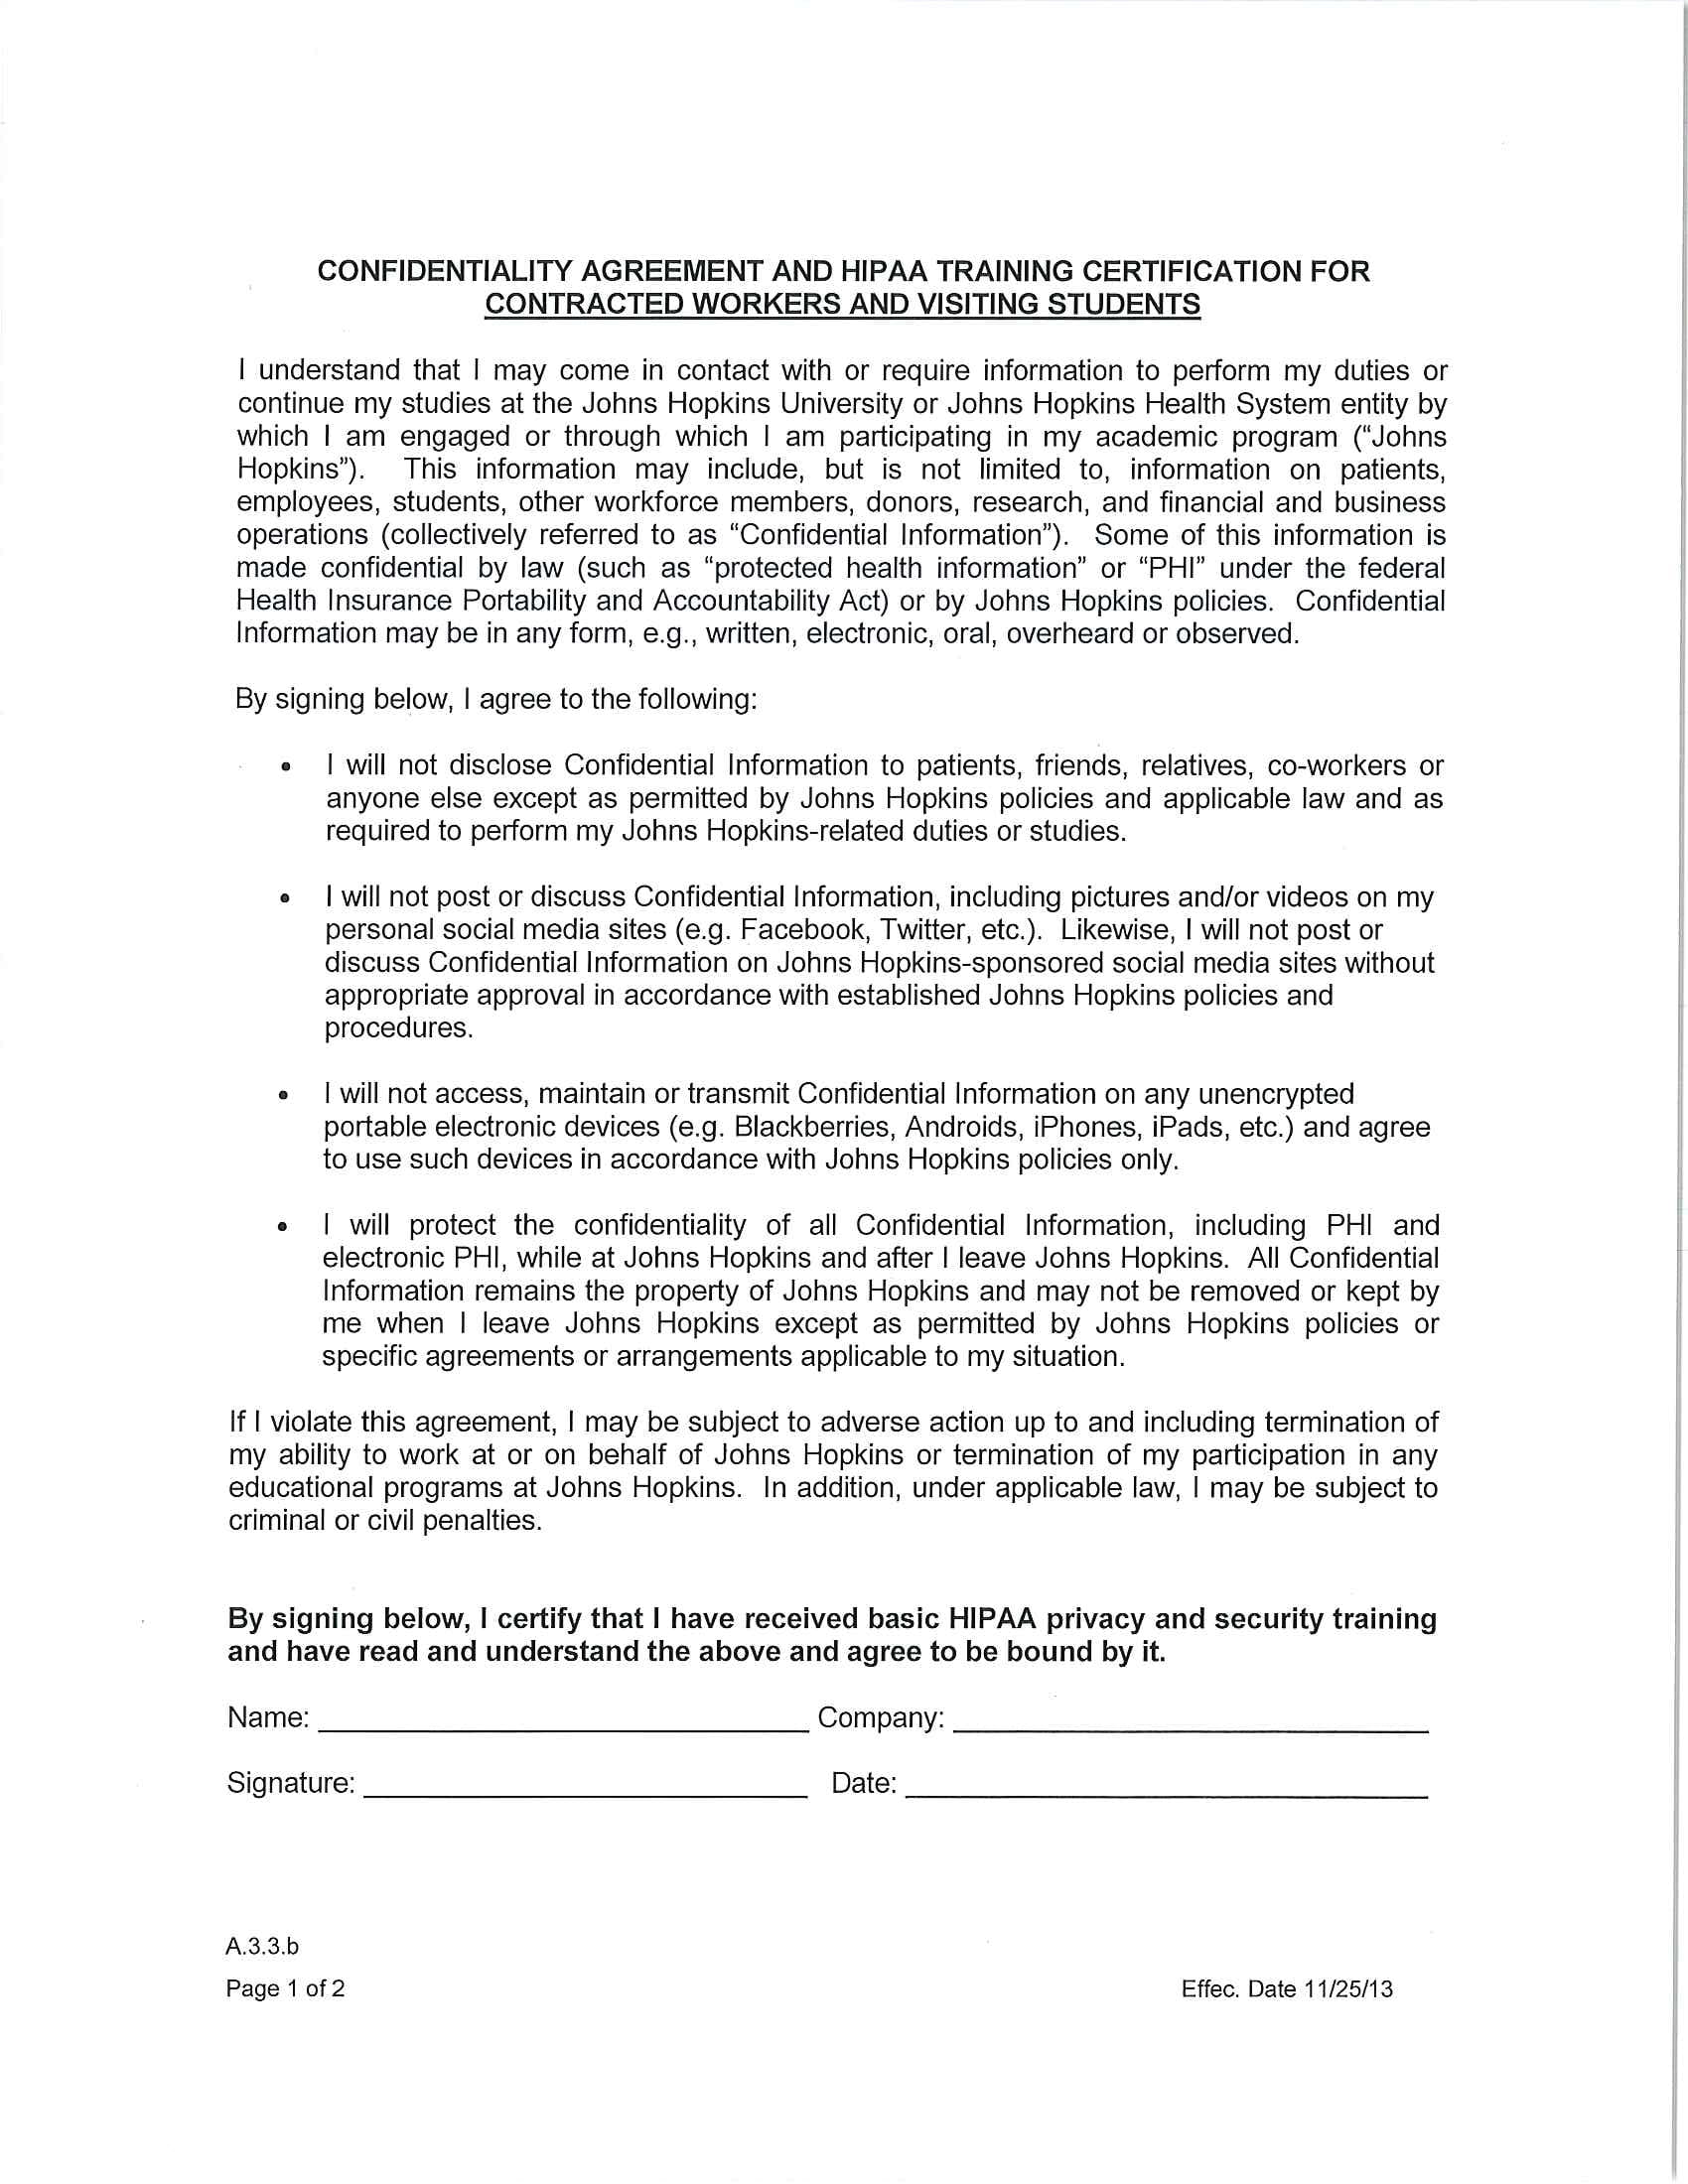 confidentiality agreement and hipaa training certification for contracter workers and visiting students example 1